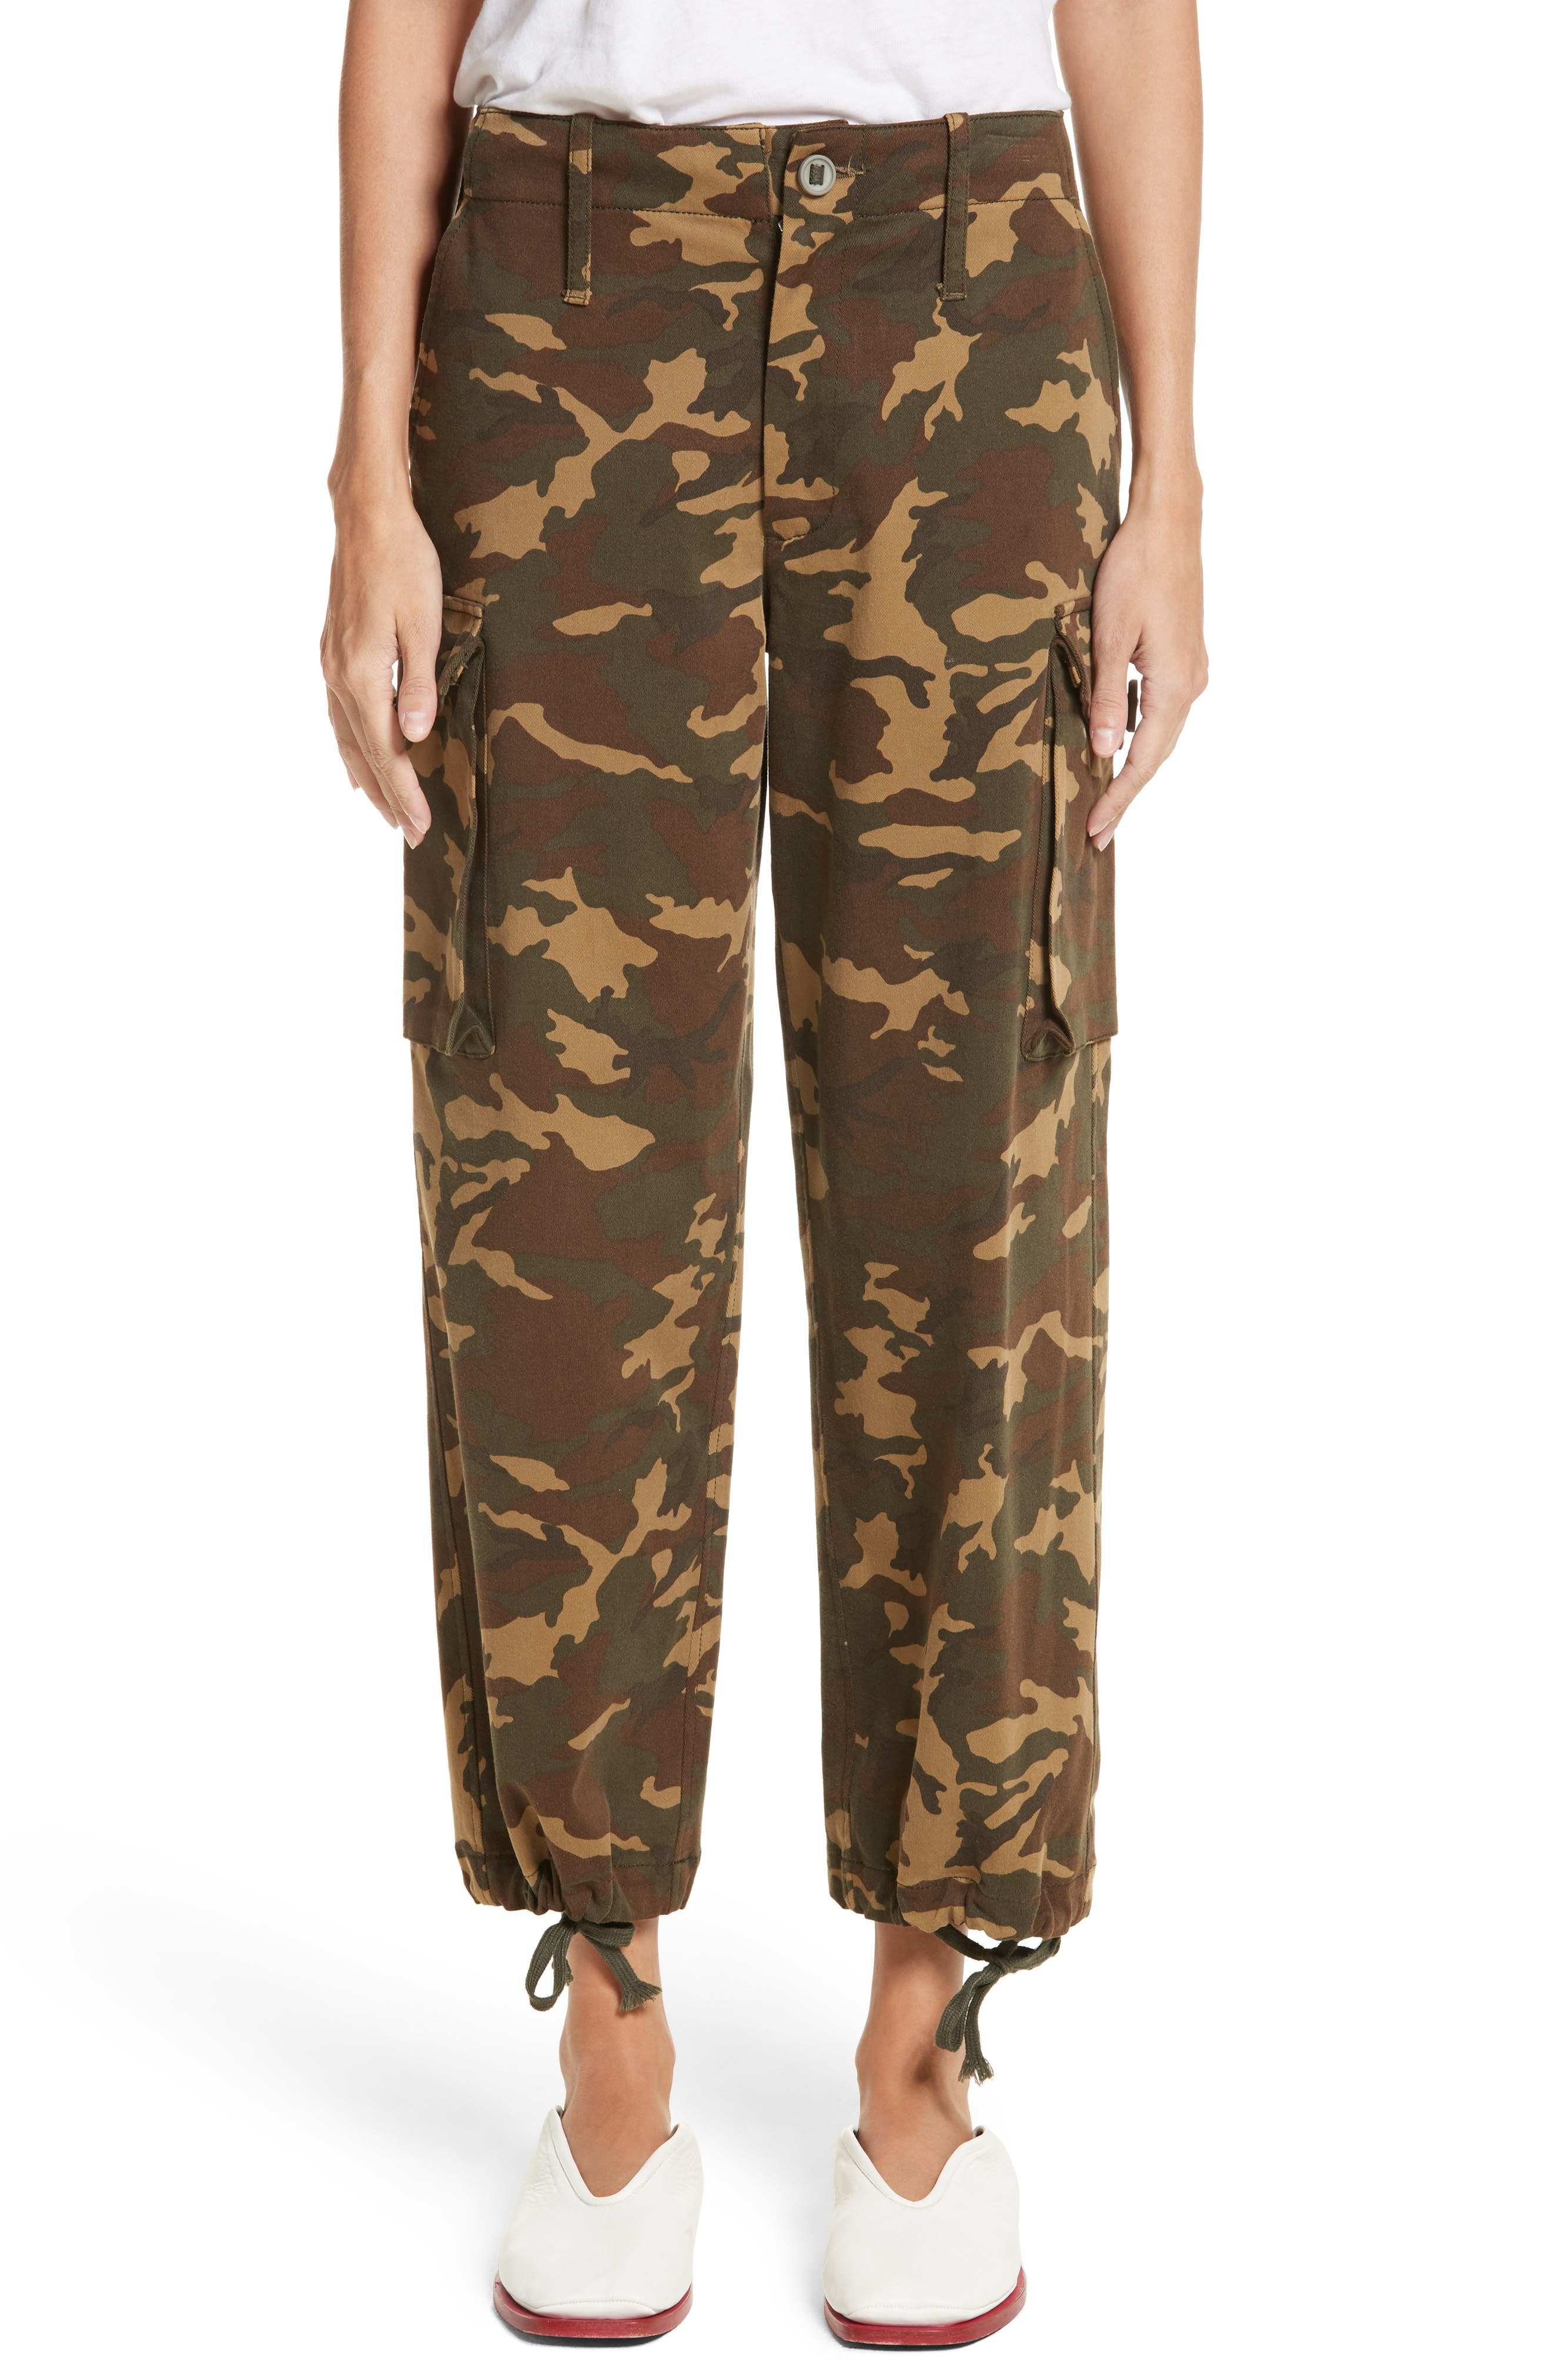 PSWL Camouflage Stretch Cotton Pants,                         Main,                         color,